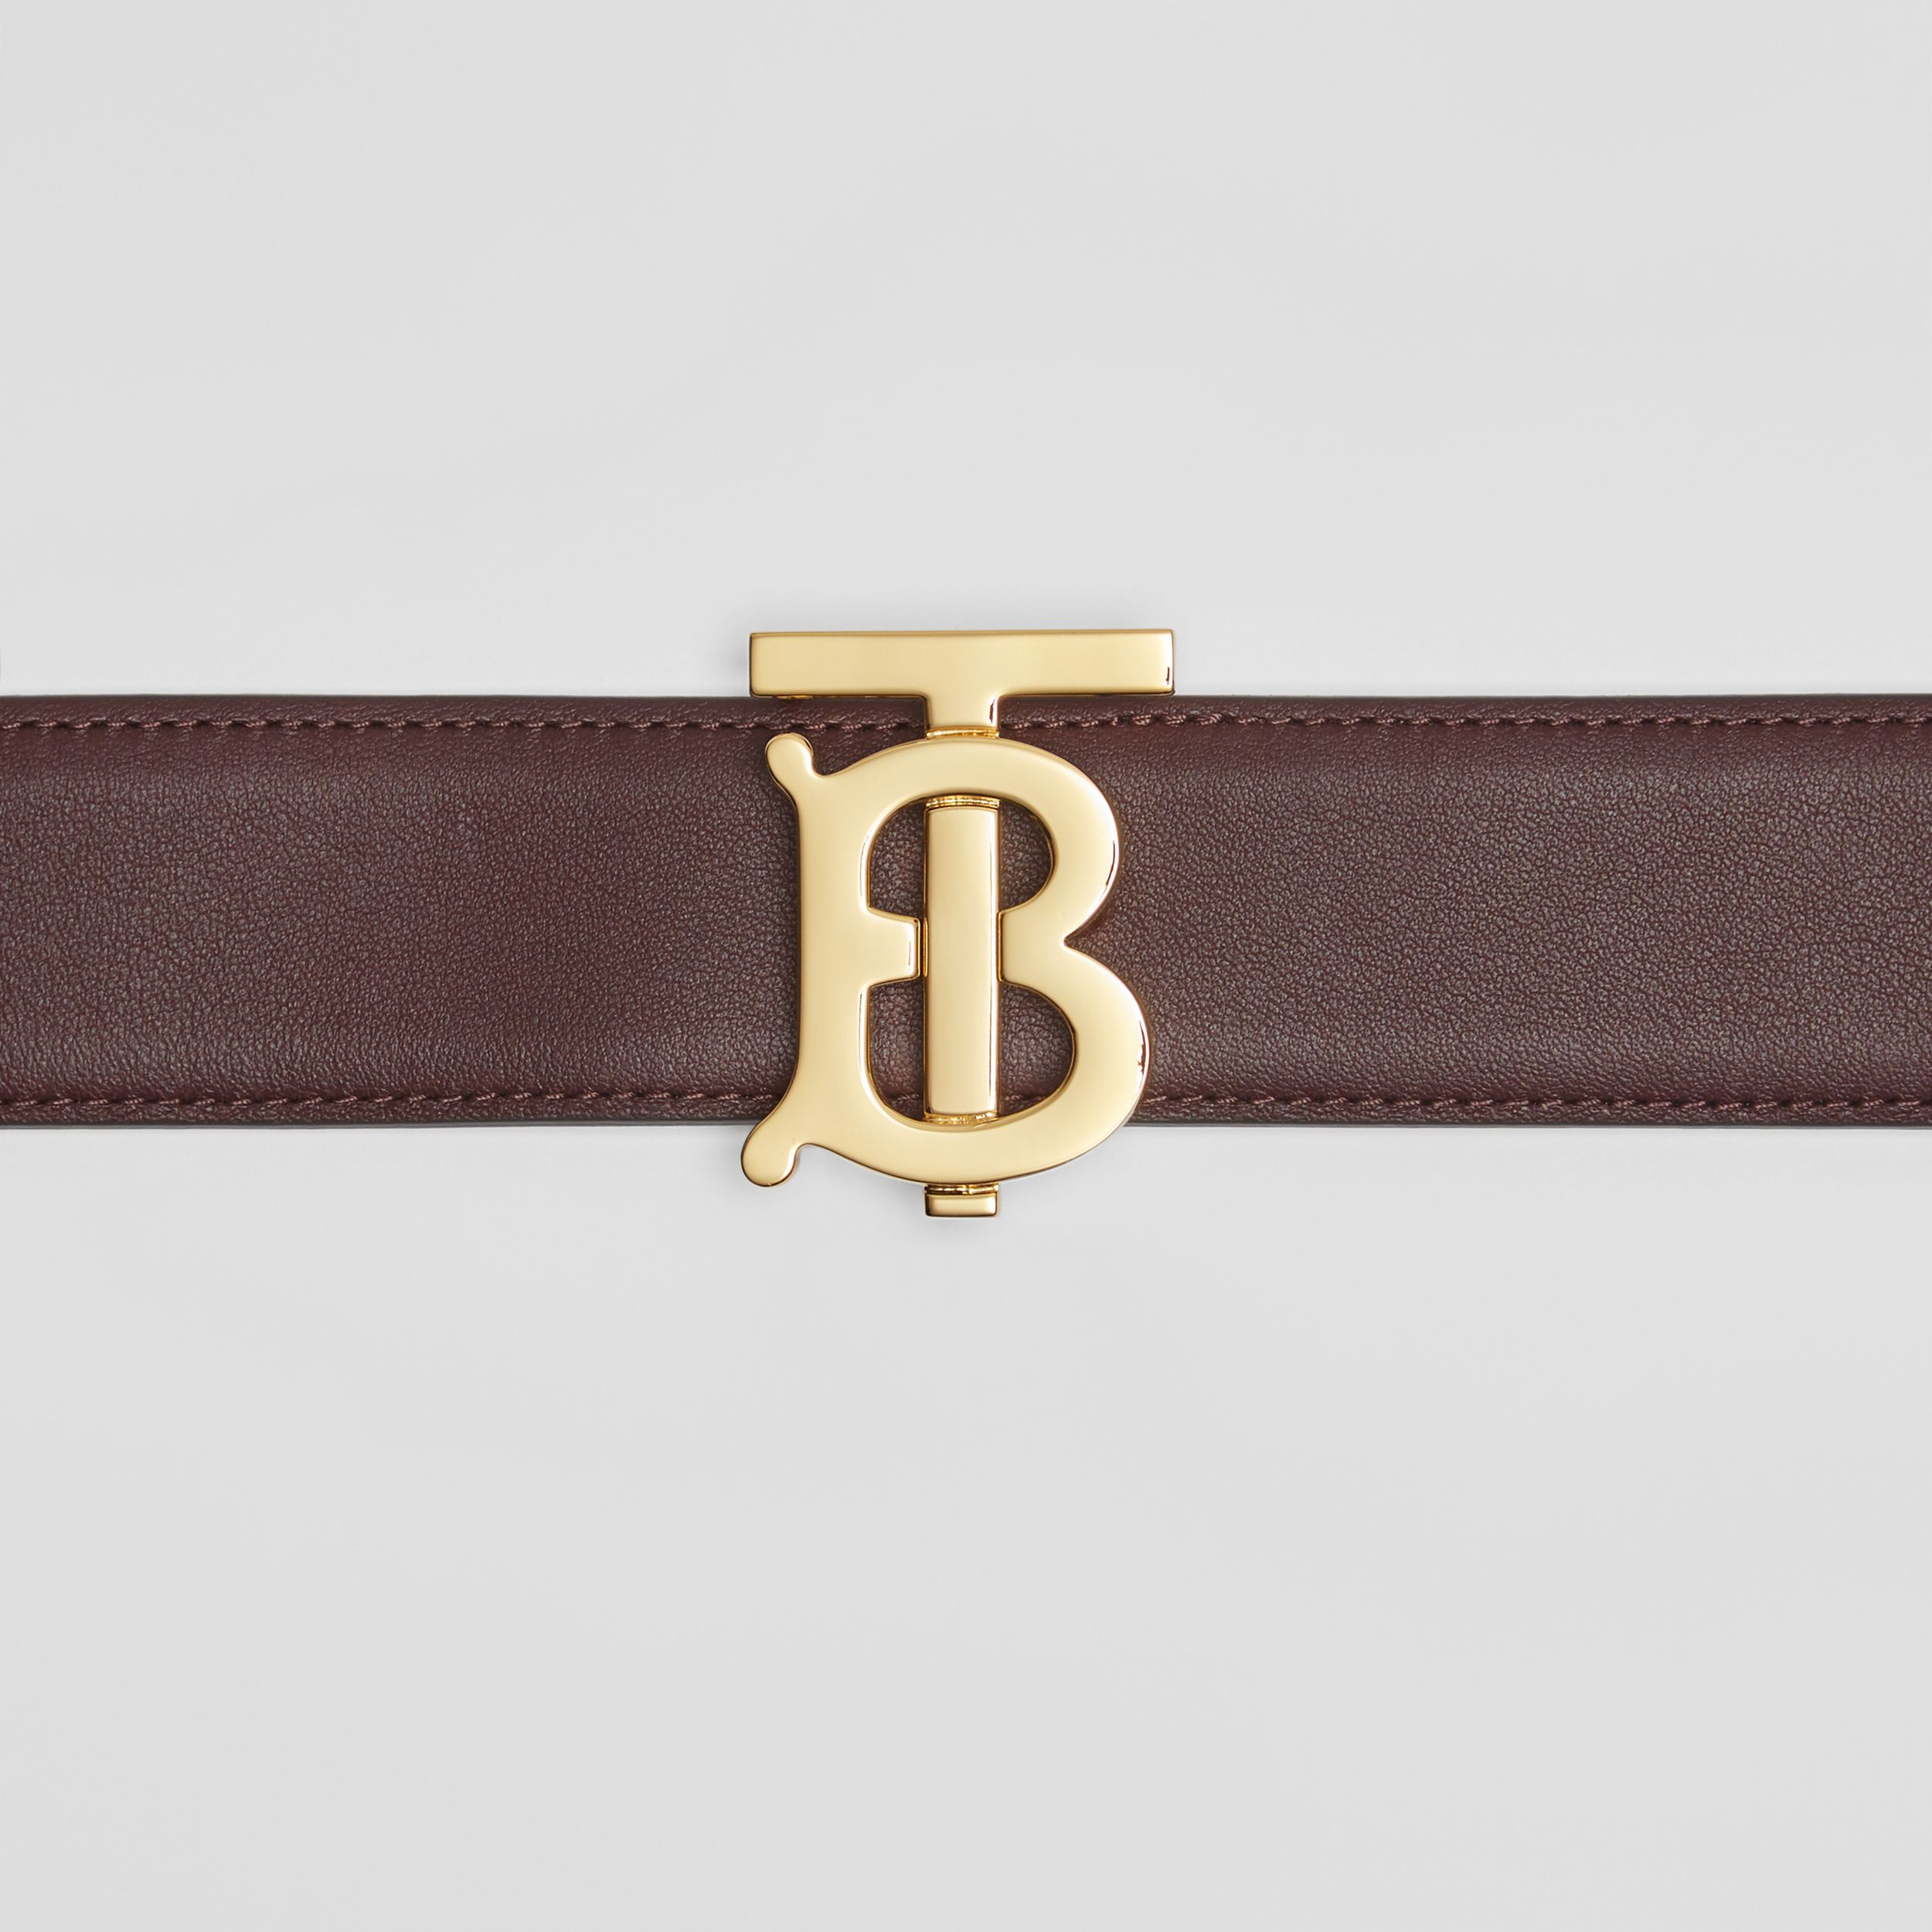 Reversible Monogram Motif Leather Belt in Oxblood/rose Beige | Burberry - 2